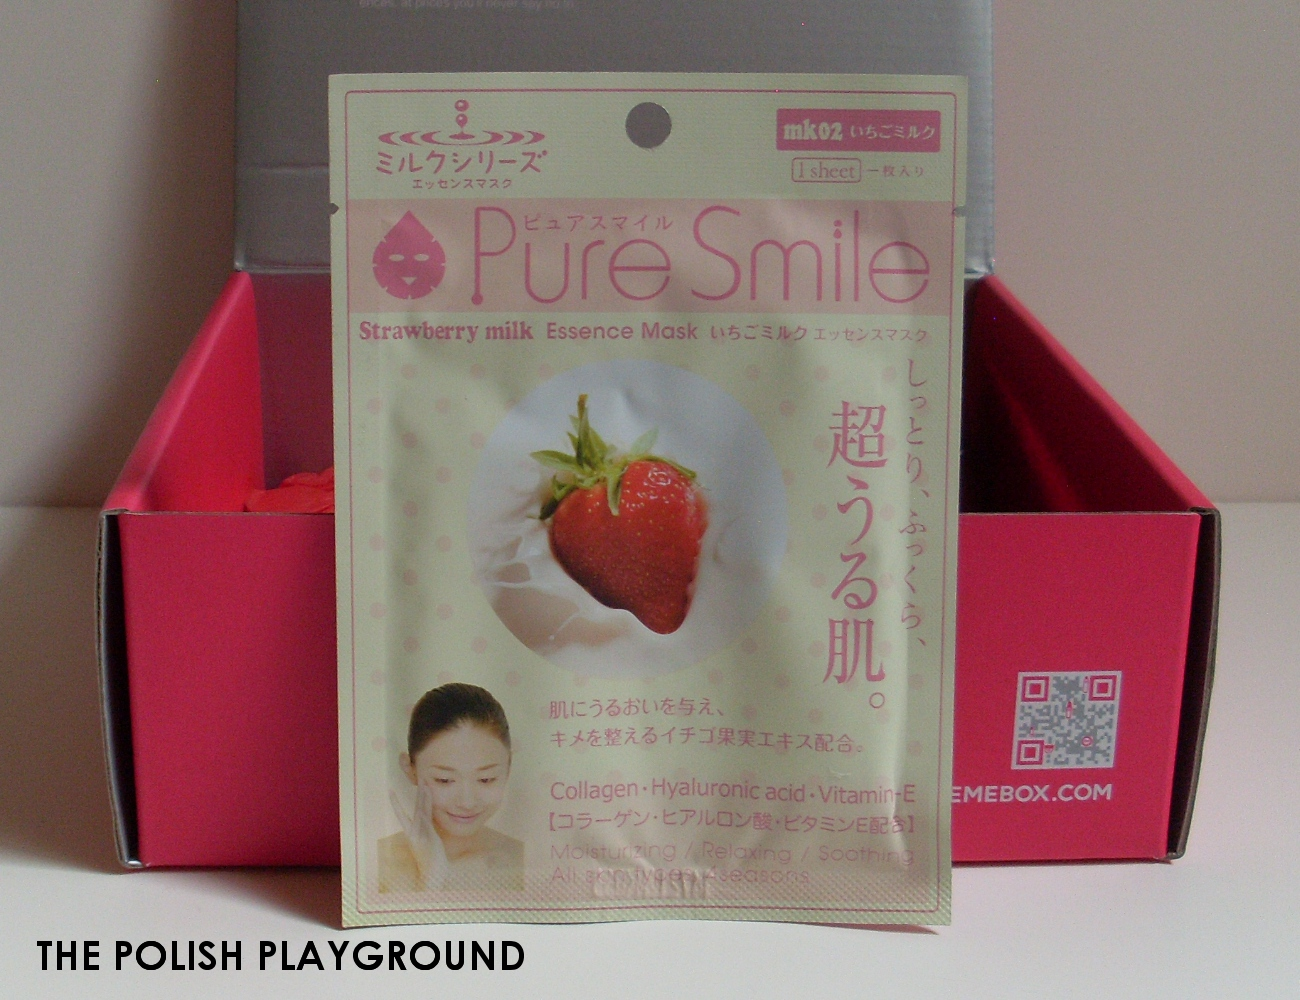 Memebox Special #20 Superfood Unboxing - Pure Smile Strawberry Milk Essence